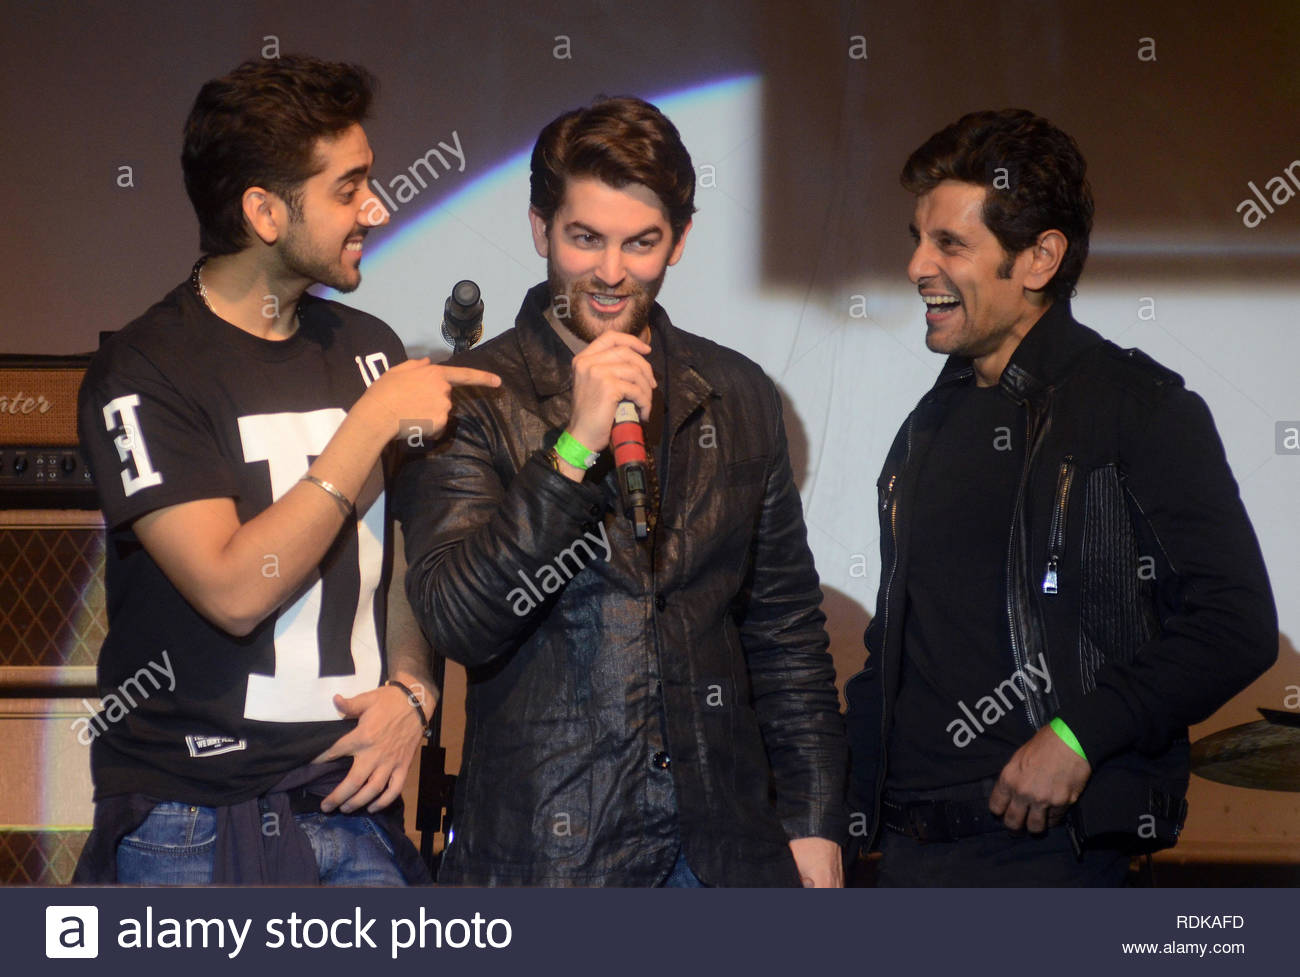 Bollywood actor Vinay Virmani, Neil Nitin Mukesh and  Vikram during the music launch of upcoming film David in Mumbai, India - Stock Image